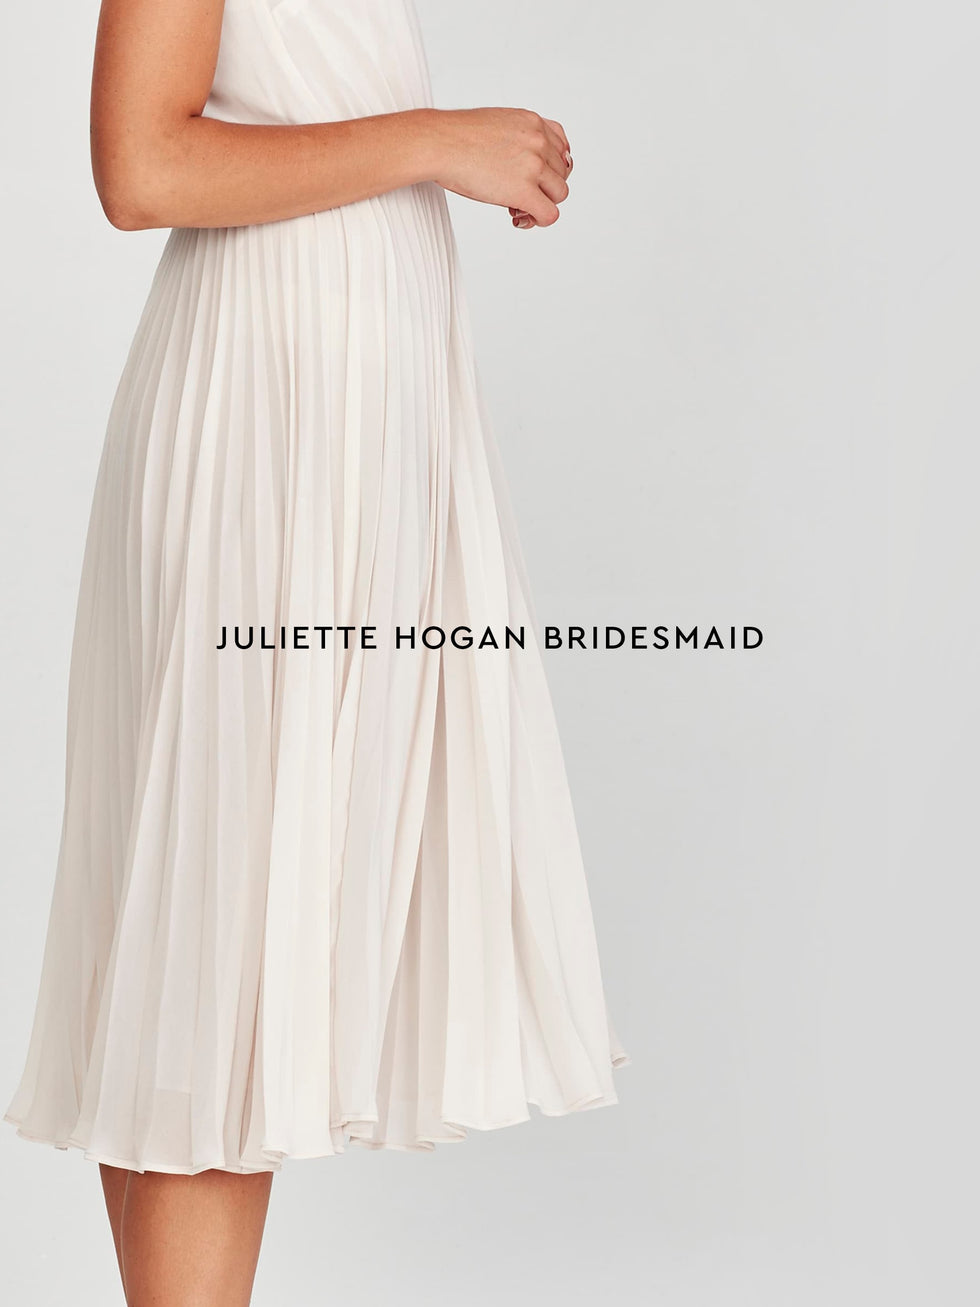 Juliette Hogan Bridesmaid